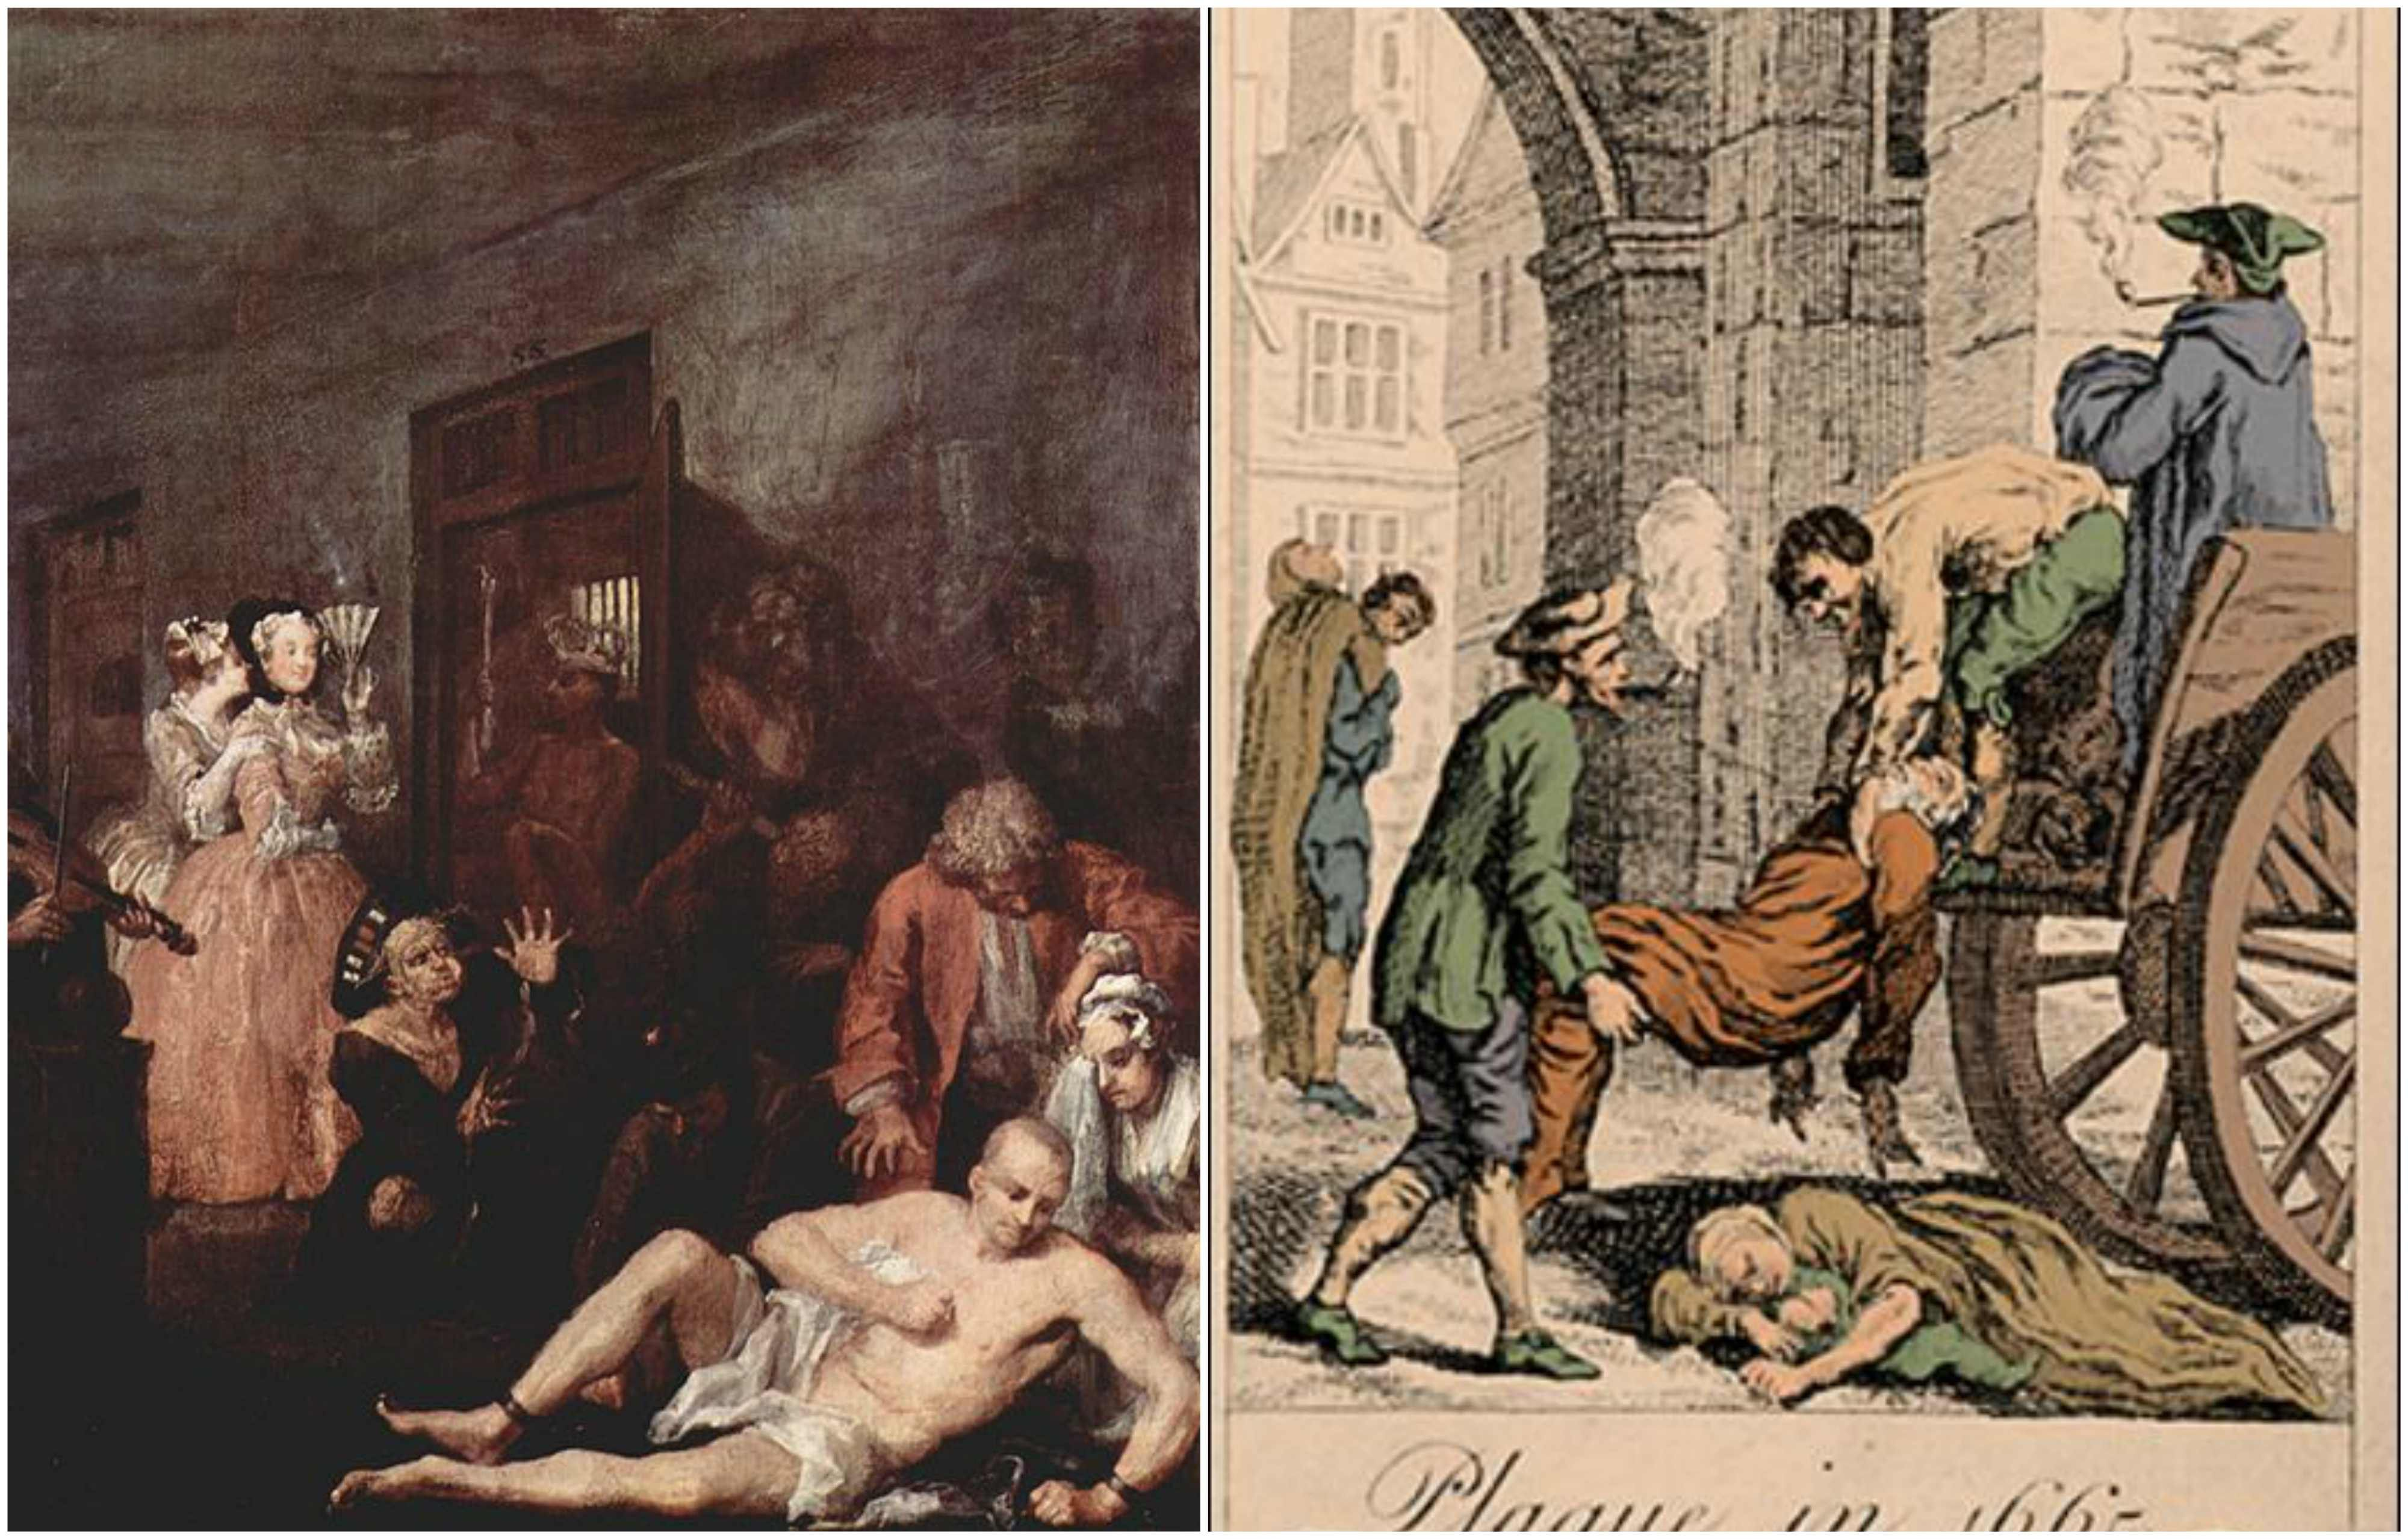 Remains of Great Plague victims discovered underneath London ...